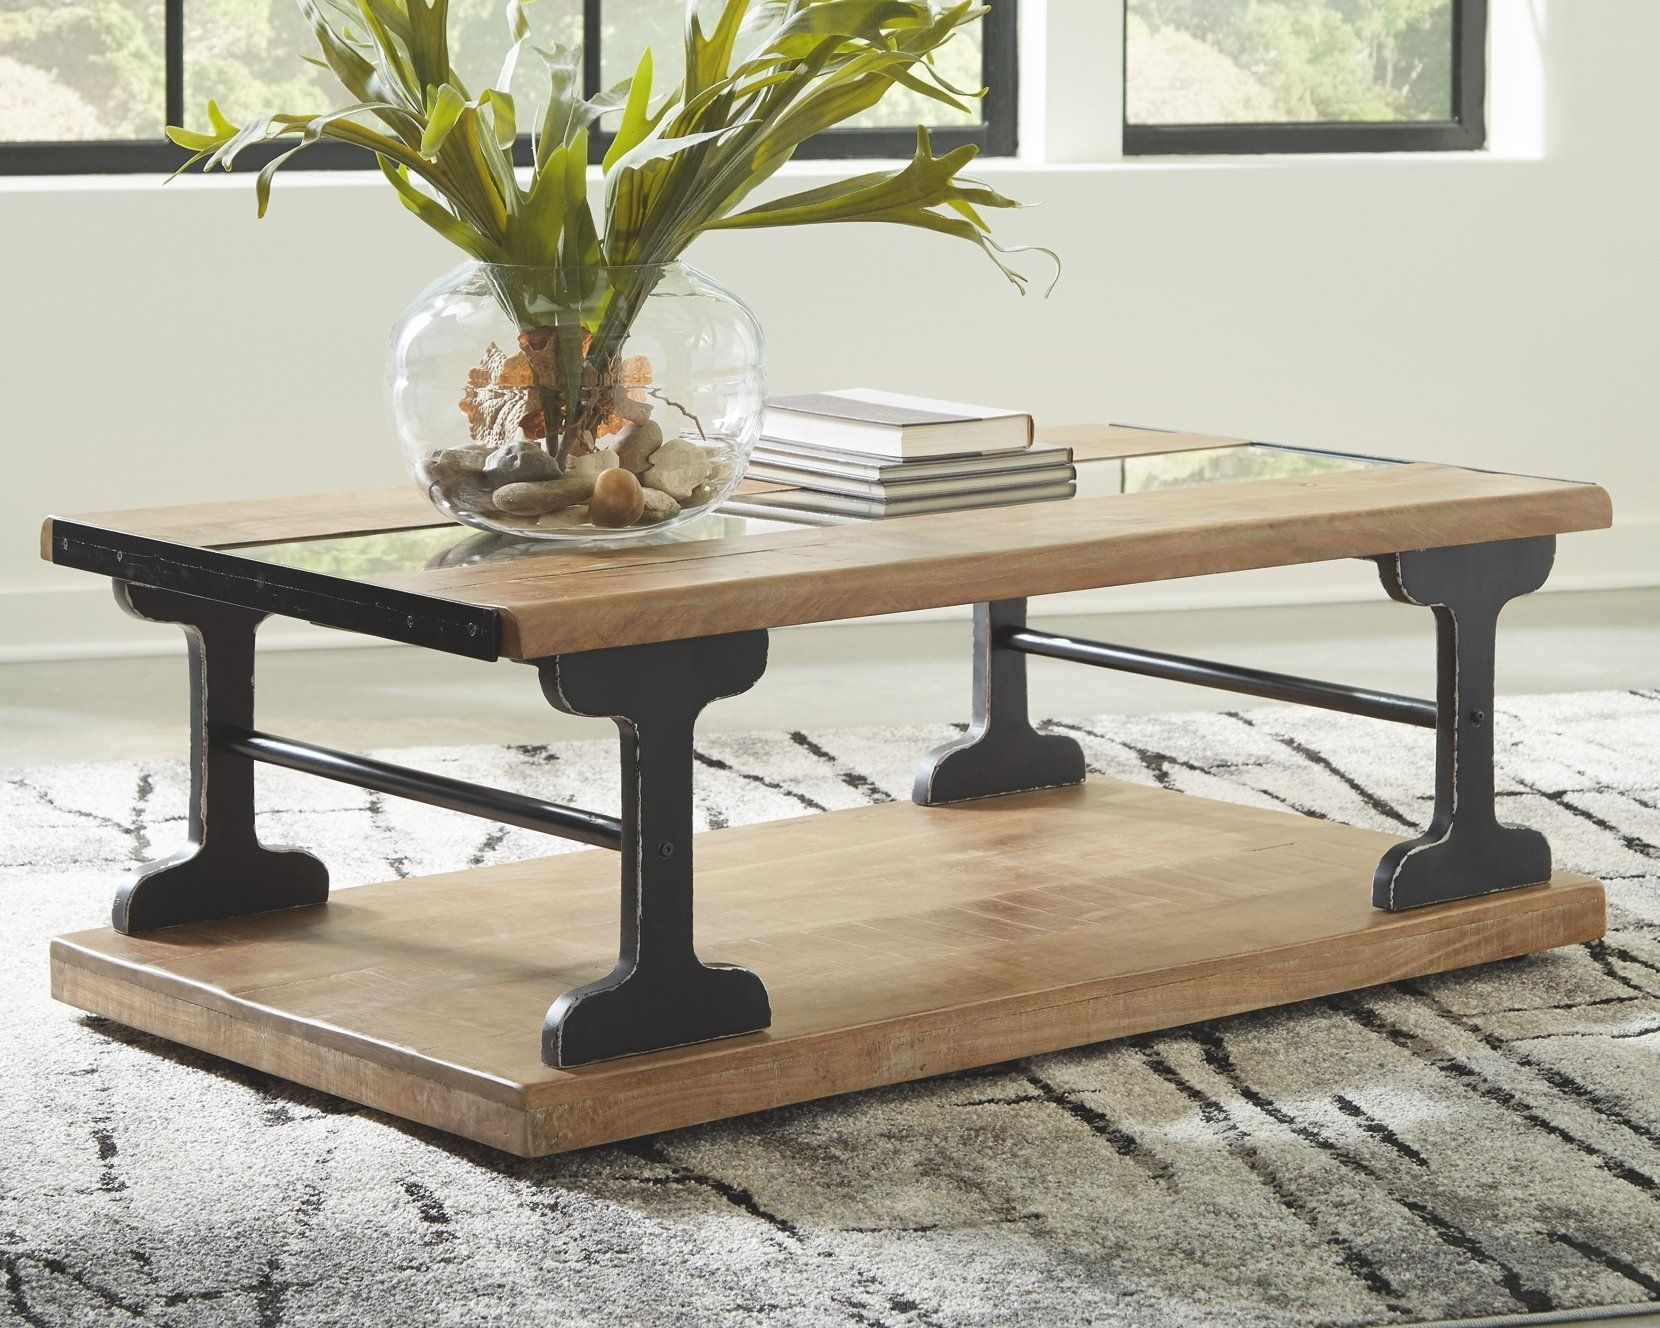 Calkosa Coffee Table T894 1 Details Urban Industrial Meets Country Farmhouse In This Cockta Coffee Table Farmhouse Style Coffee Table Live Edge Coffee Table [ 1328 x 1660 Pixel ]